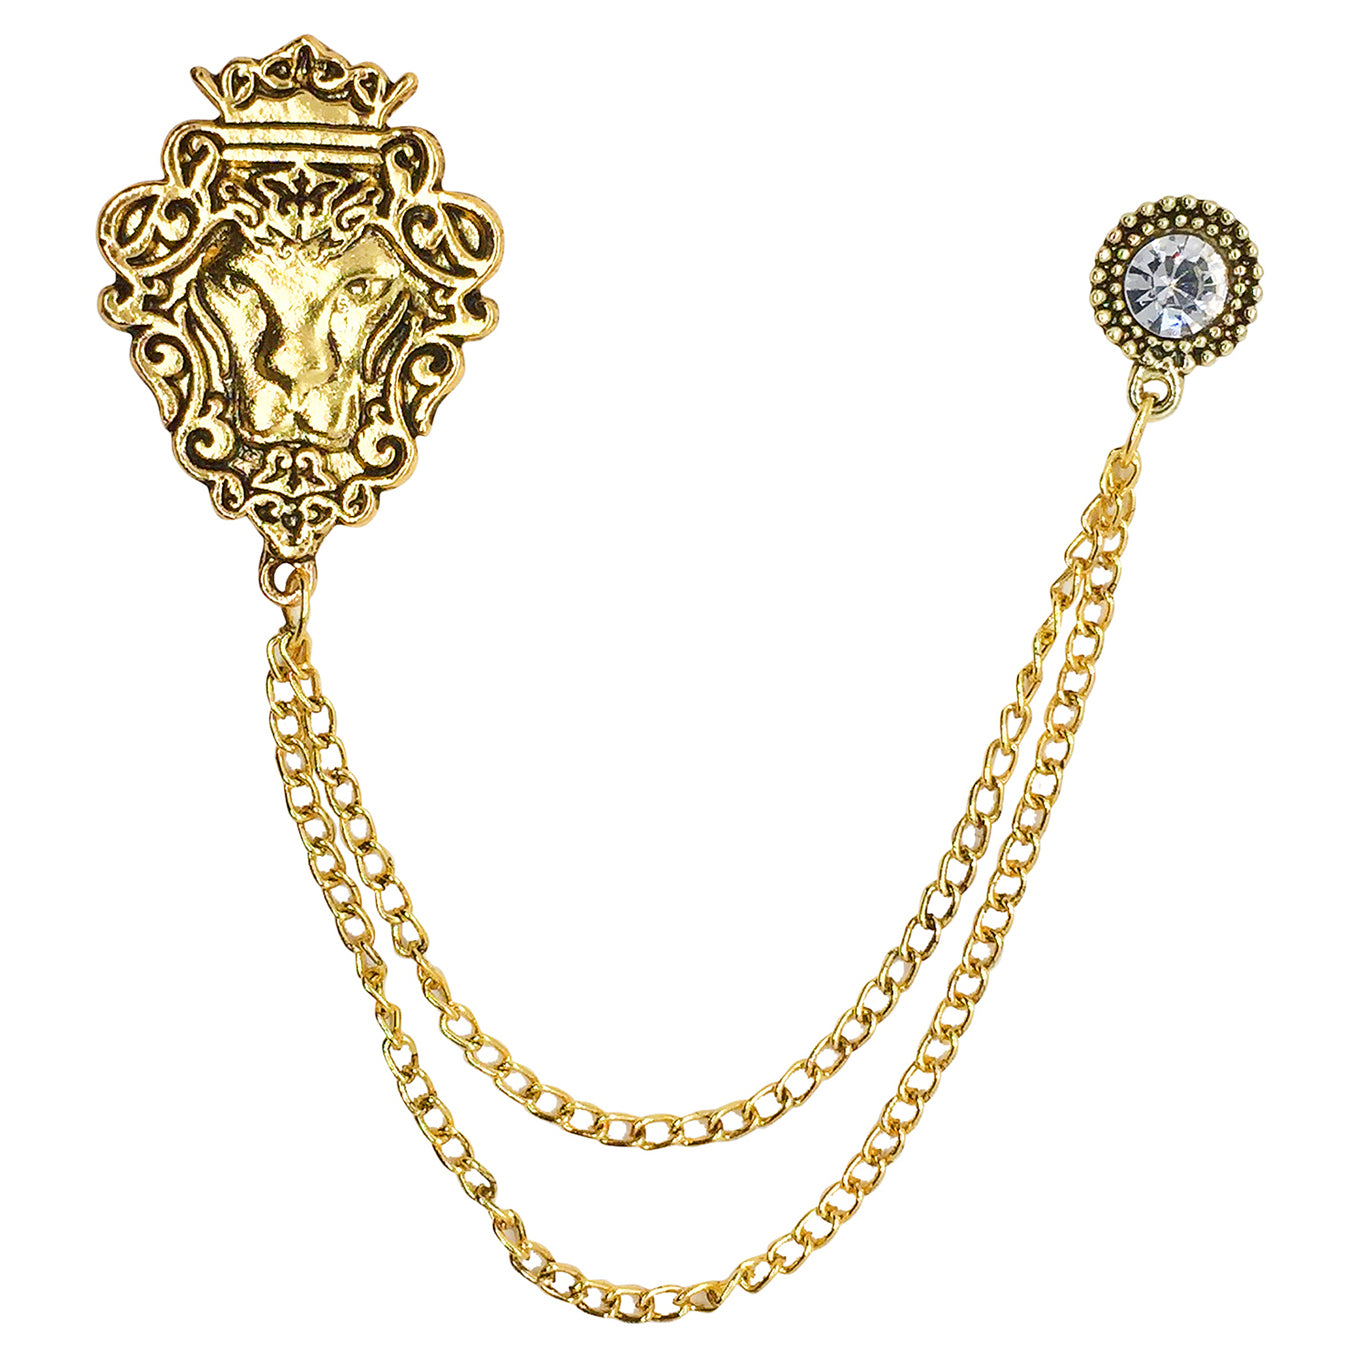 Double Chain Lion Brooch (Antique Golden)